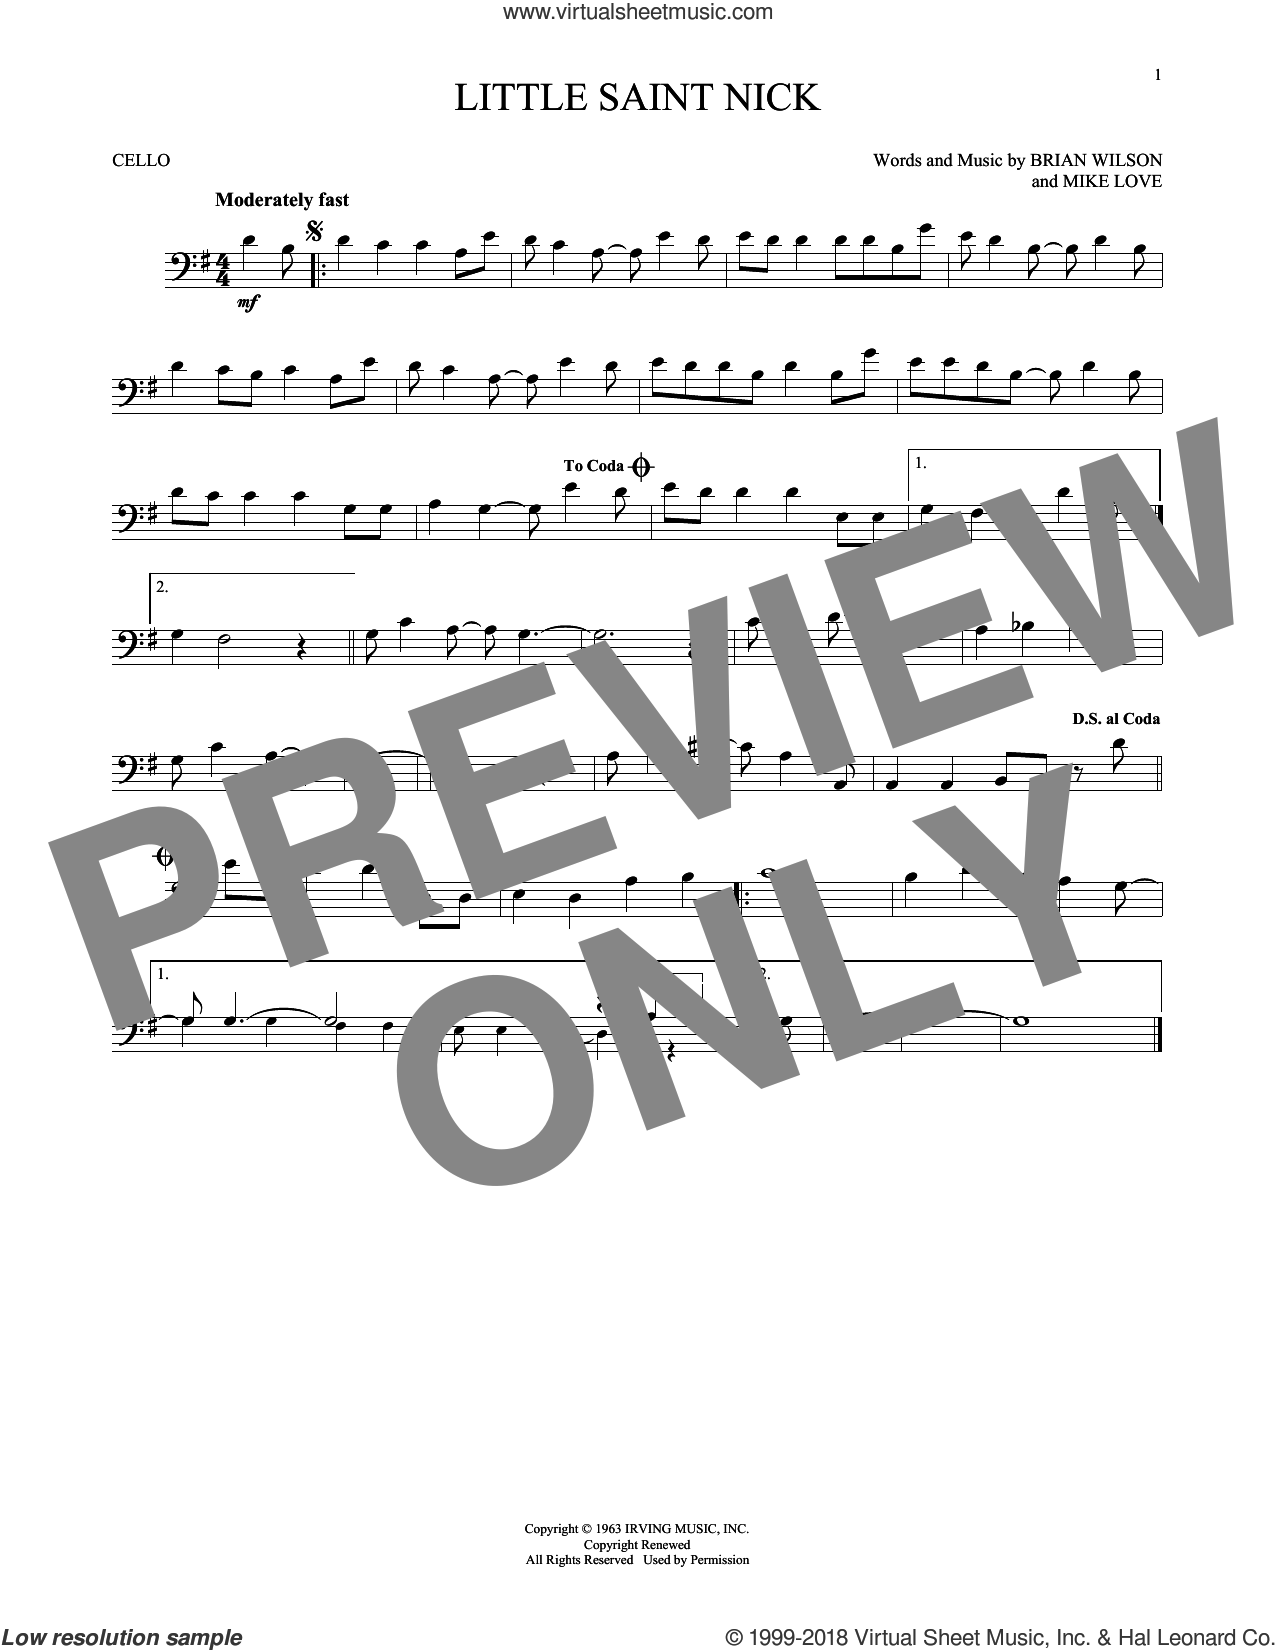 Little Saint Nick sheet music for cello solo by The Beach Boys, Brian Wilson and Mike Love, intermediate skill level